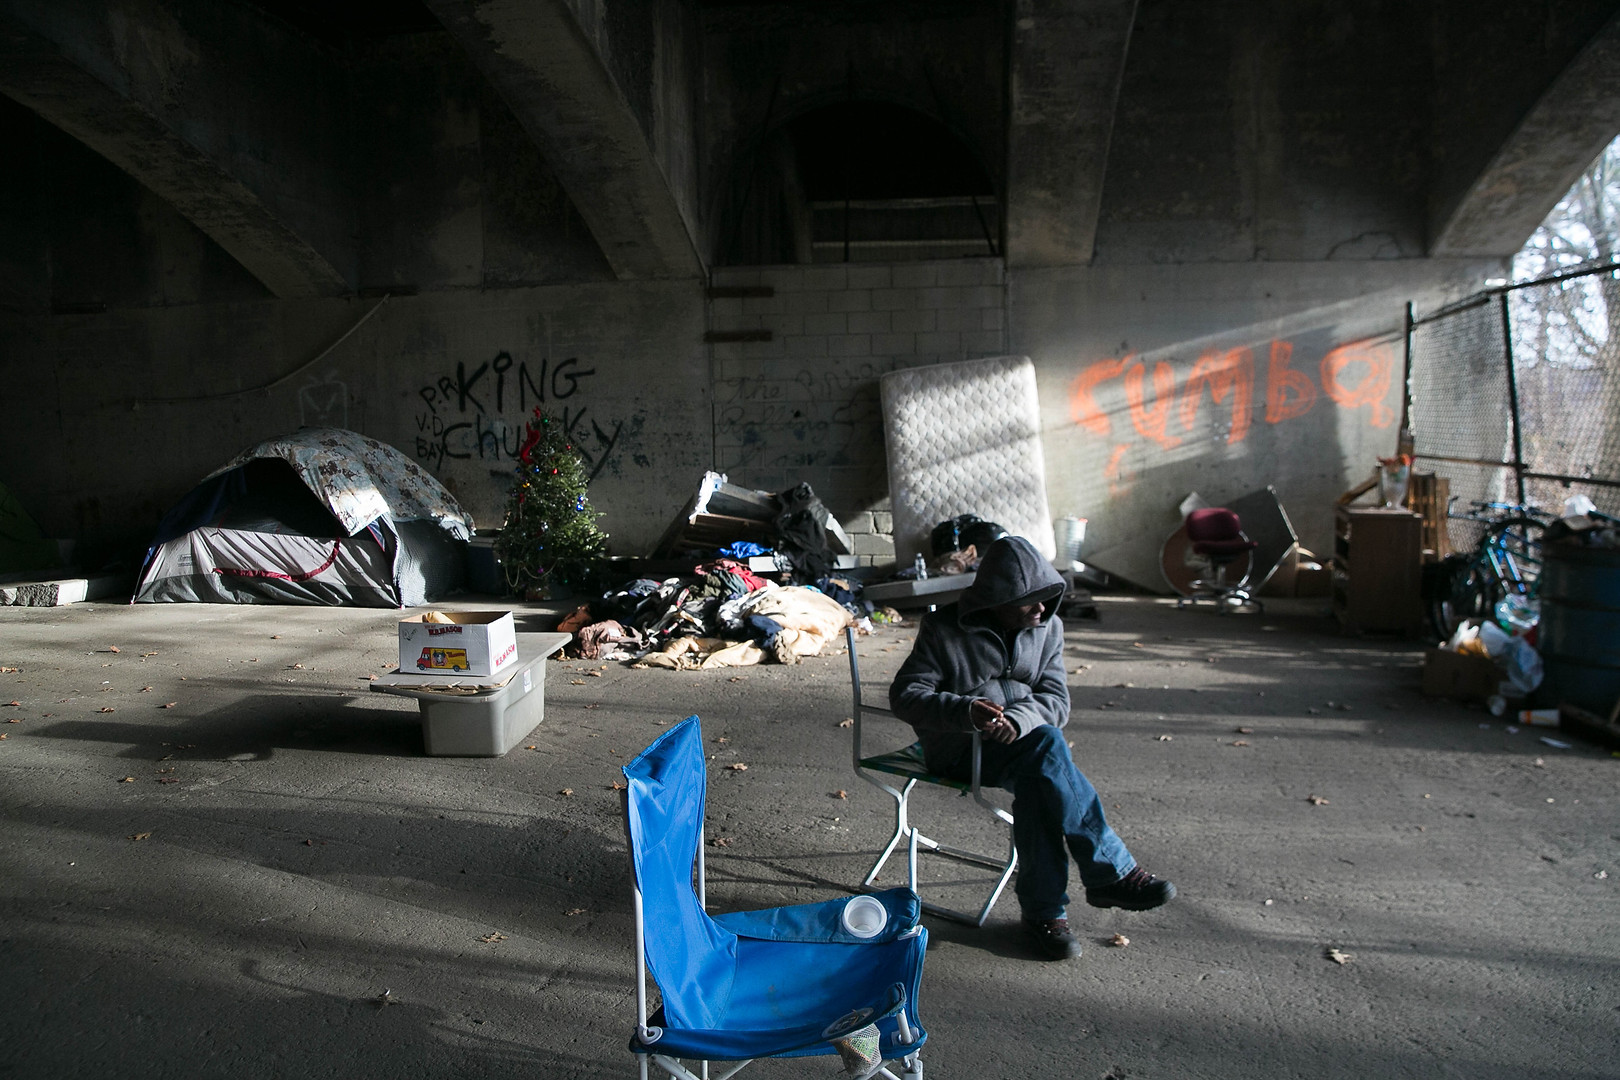 A opiate addict is seen high in a homeless encampment in Lawrence, MA